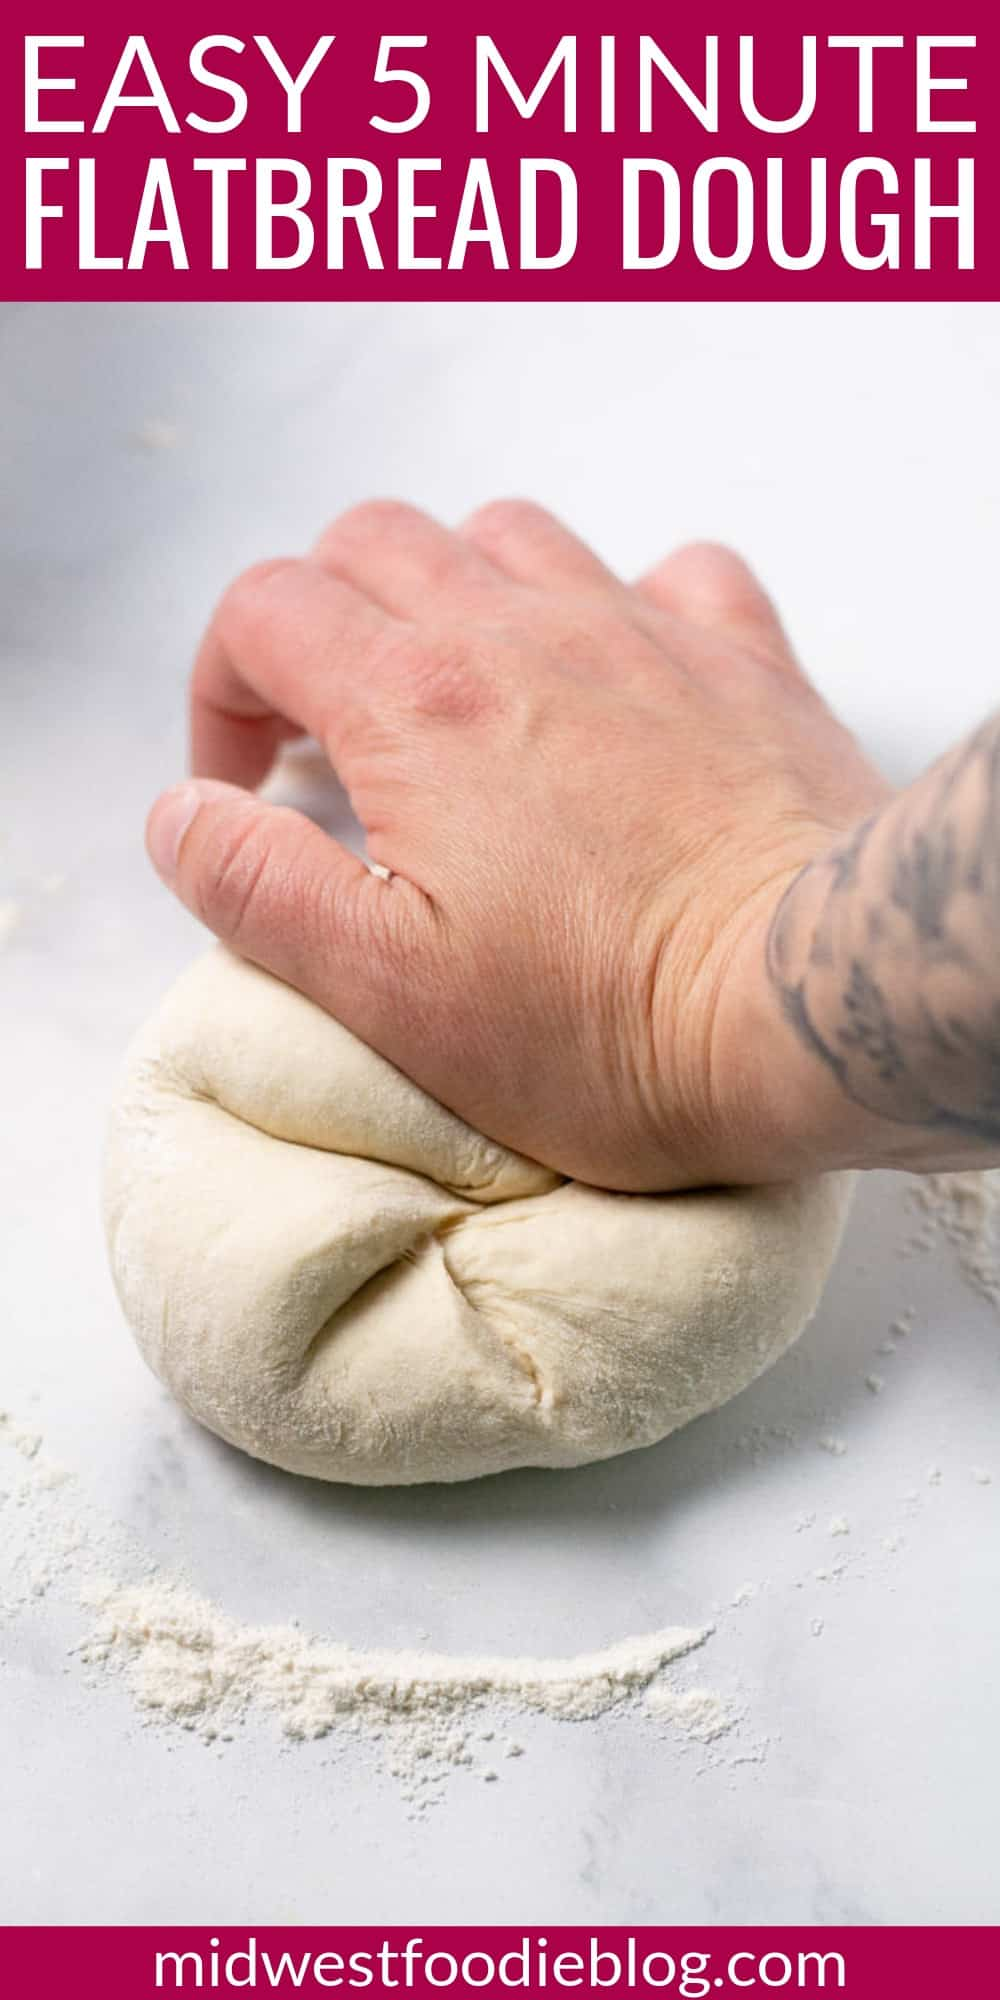 5 Minute Flatbread Pizza Dough | Midwest Foodie